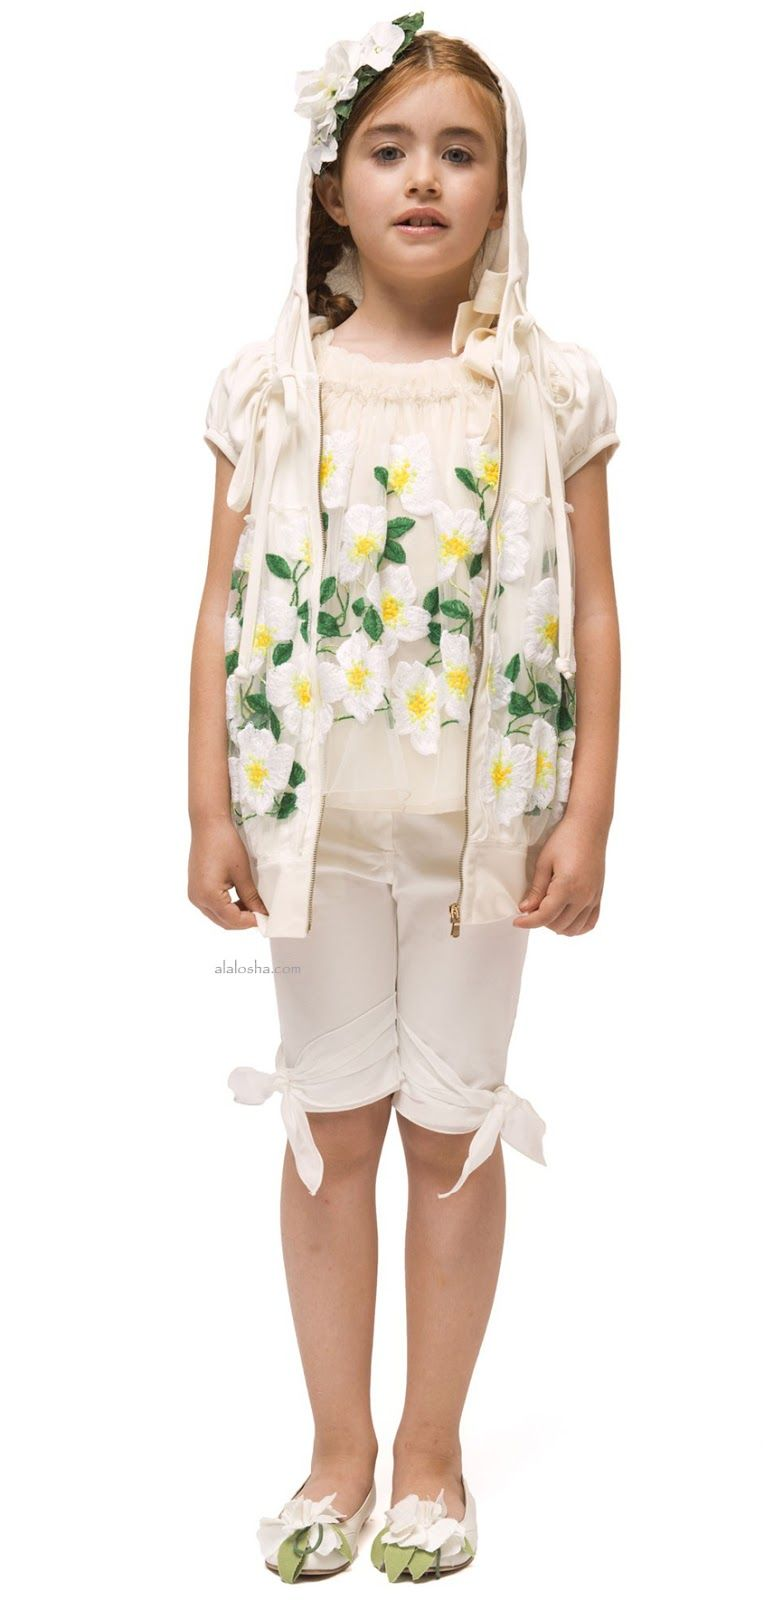 ALALOSHA: VOGUE ENFANTS: These I PINCO PALLINO SS15‬ Flowers dresses are going to propel your look from simple to standout!